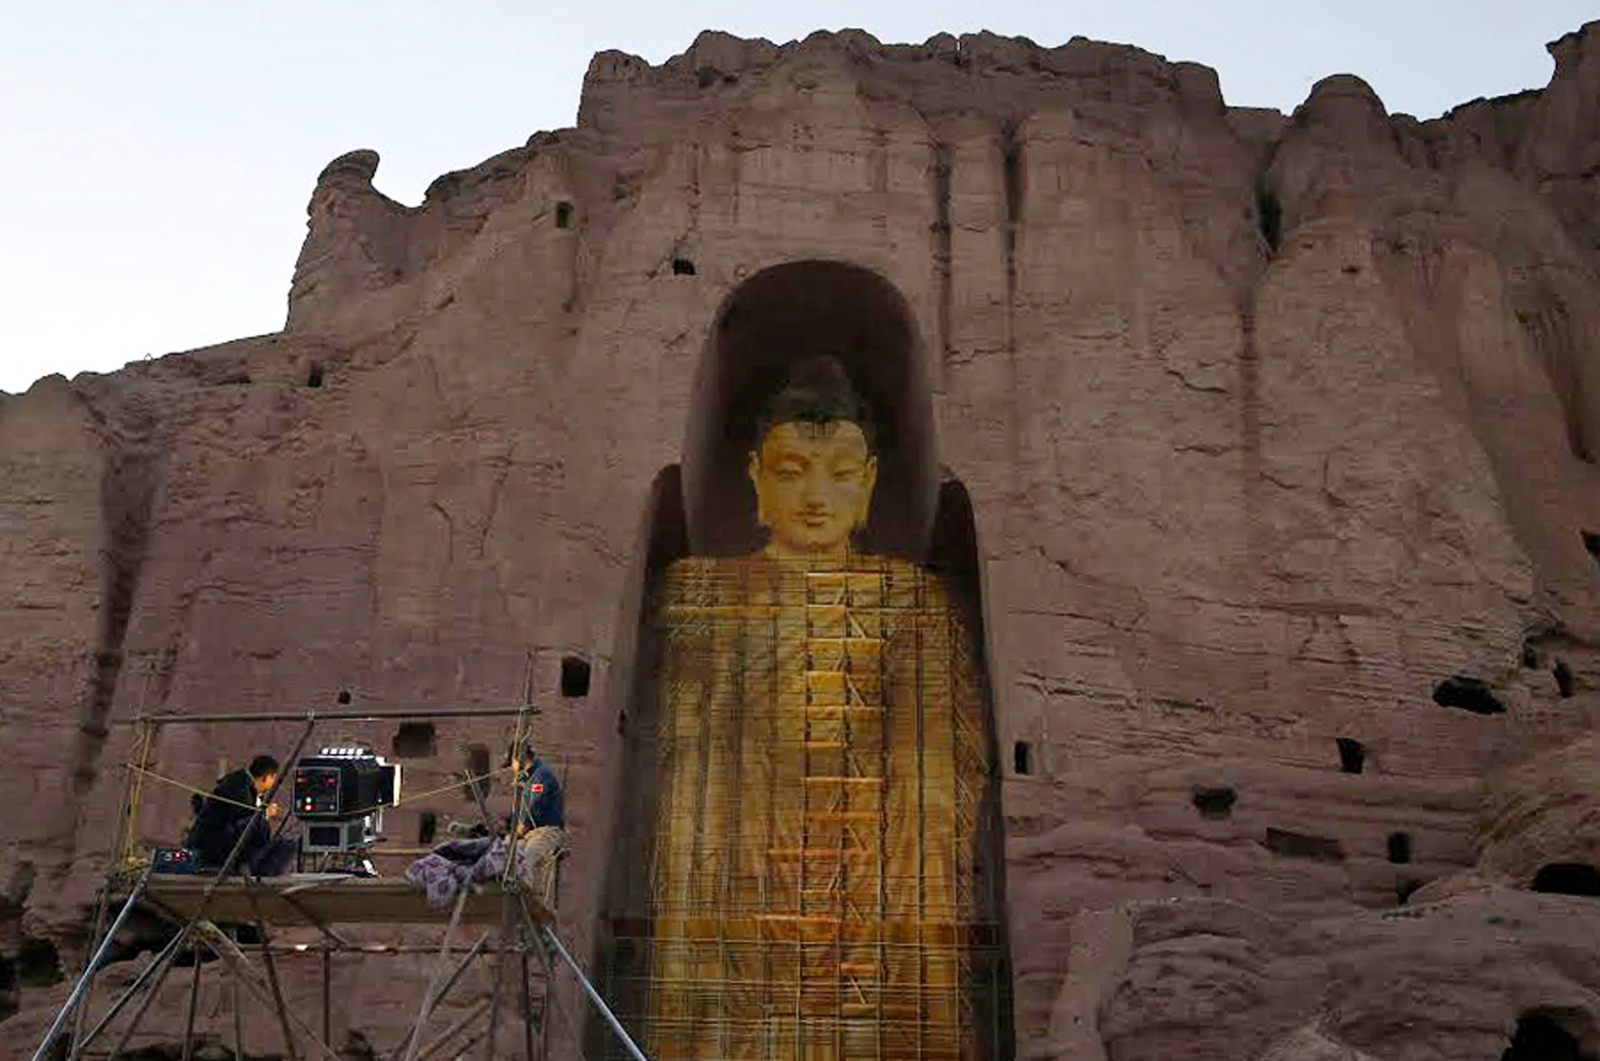 Bamiyan Buddhas recreated using laser 3D projections